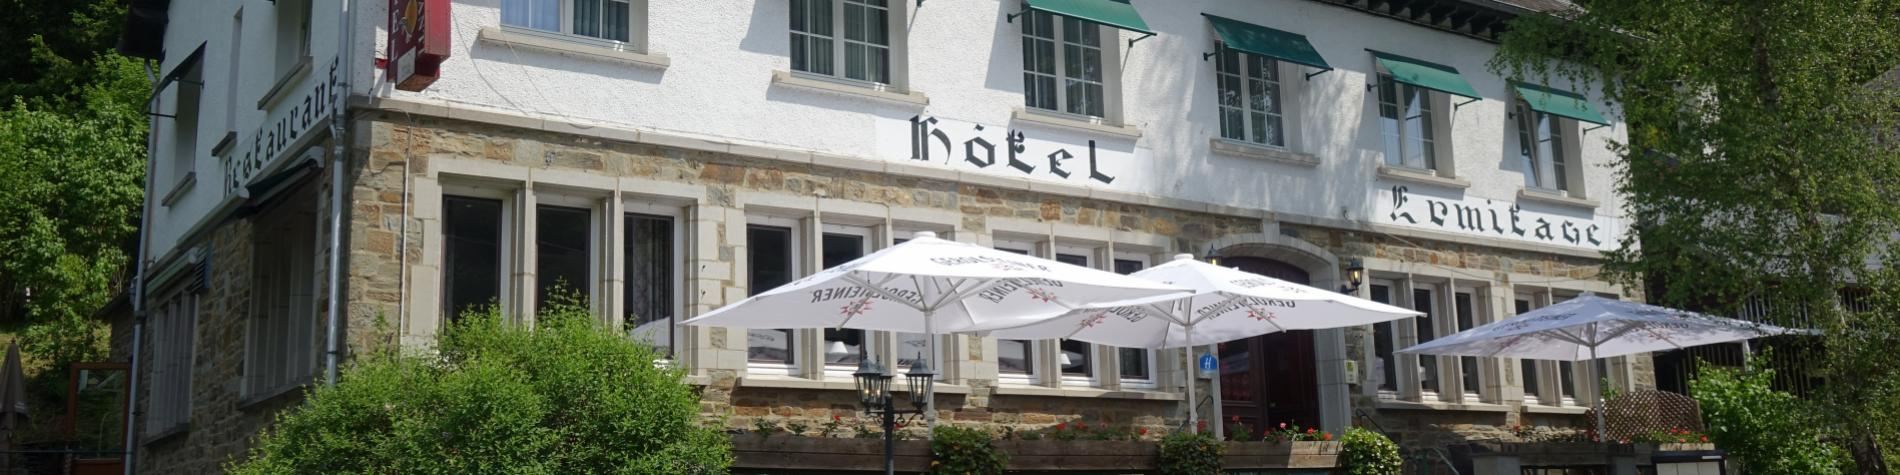 Discover L'Hermitage, a hotel restaurant in Houffalize, with its Bistrot des Saveurs restaurant